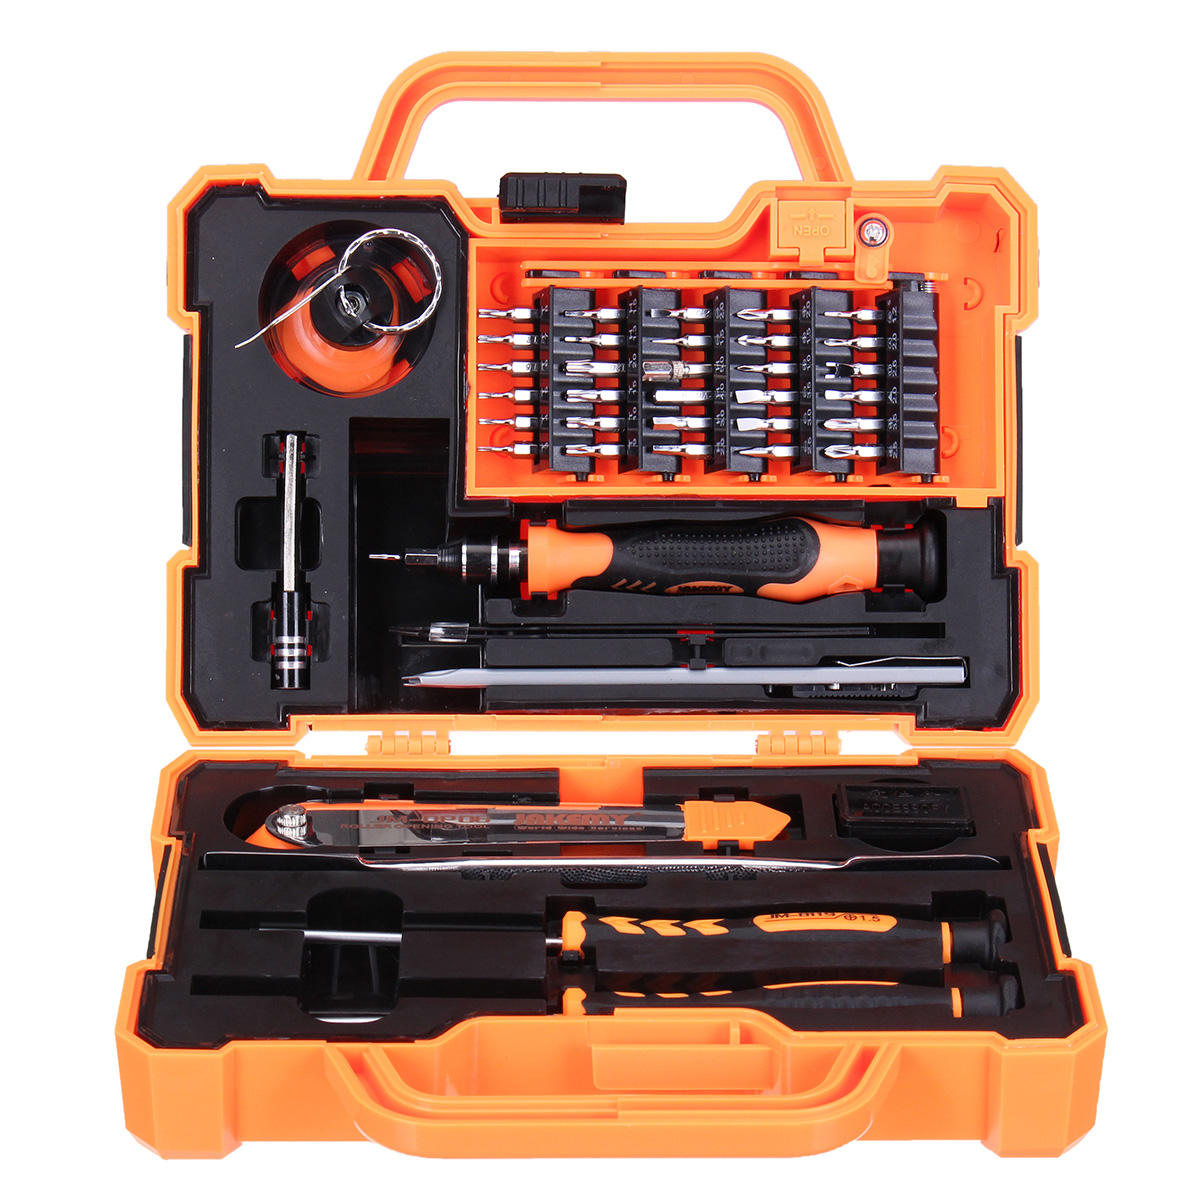 Jakemy Precision Screwdriver Unboxing Interframe Media Obeng Set Jm 8101 33 In 1 Repair Tool Kit Ipad 8139 45 Professional Electronic Household